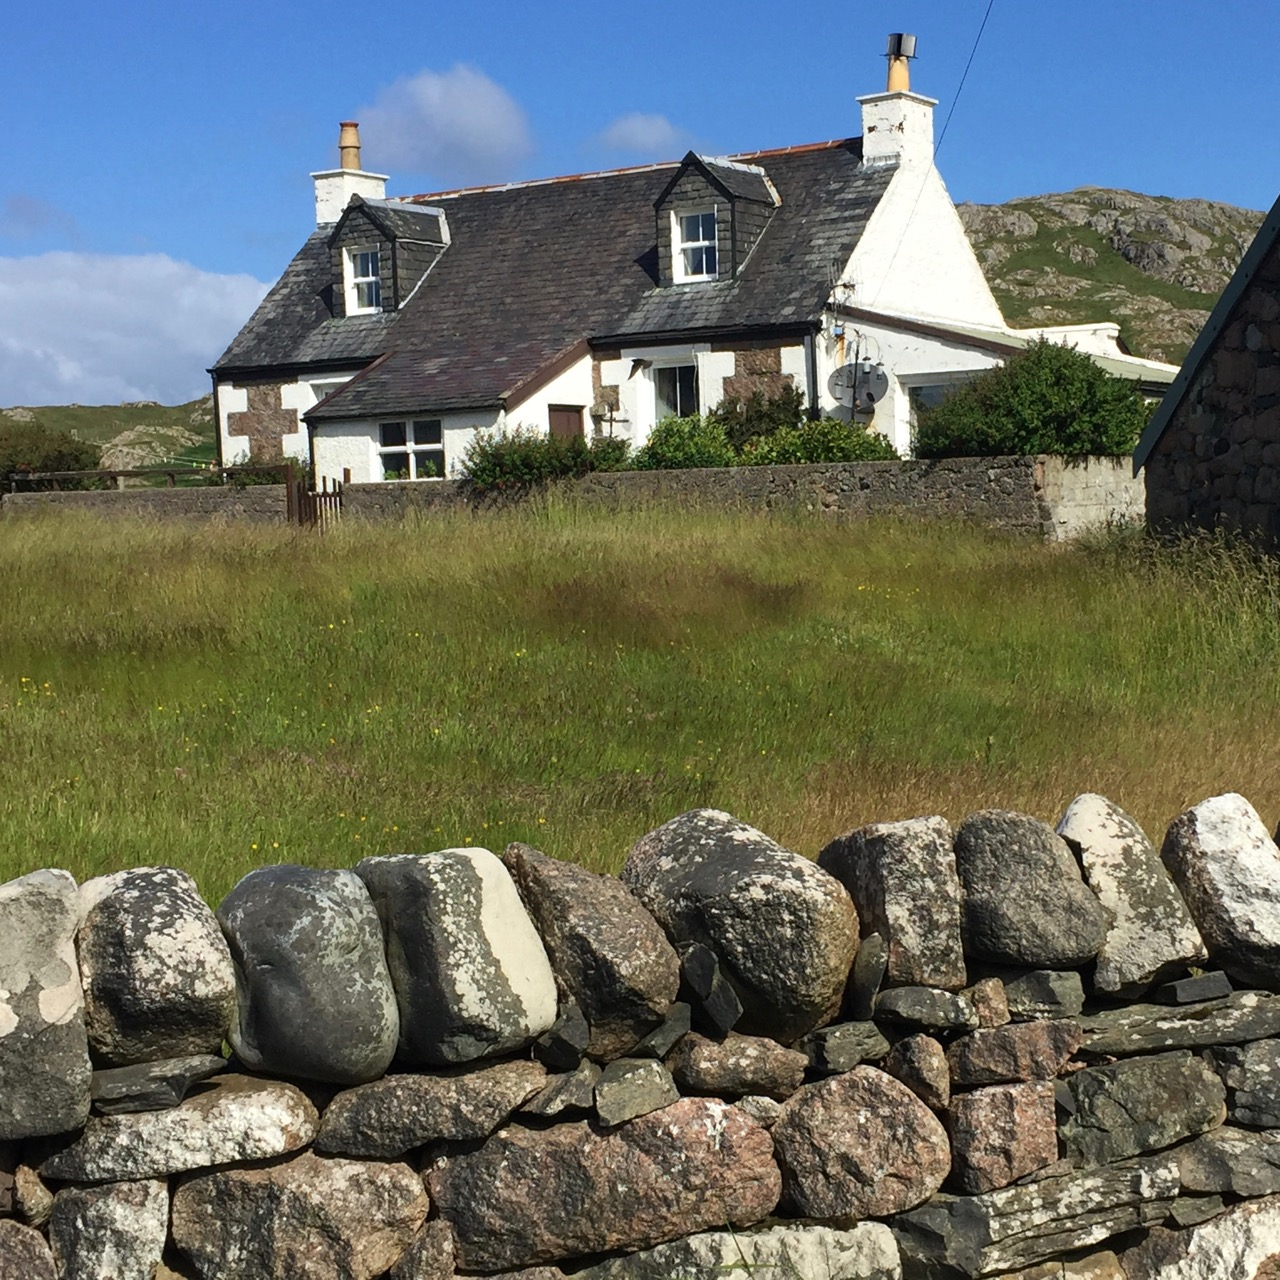 Iona Pilgrimage - June 2019